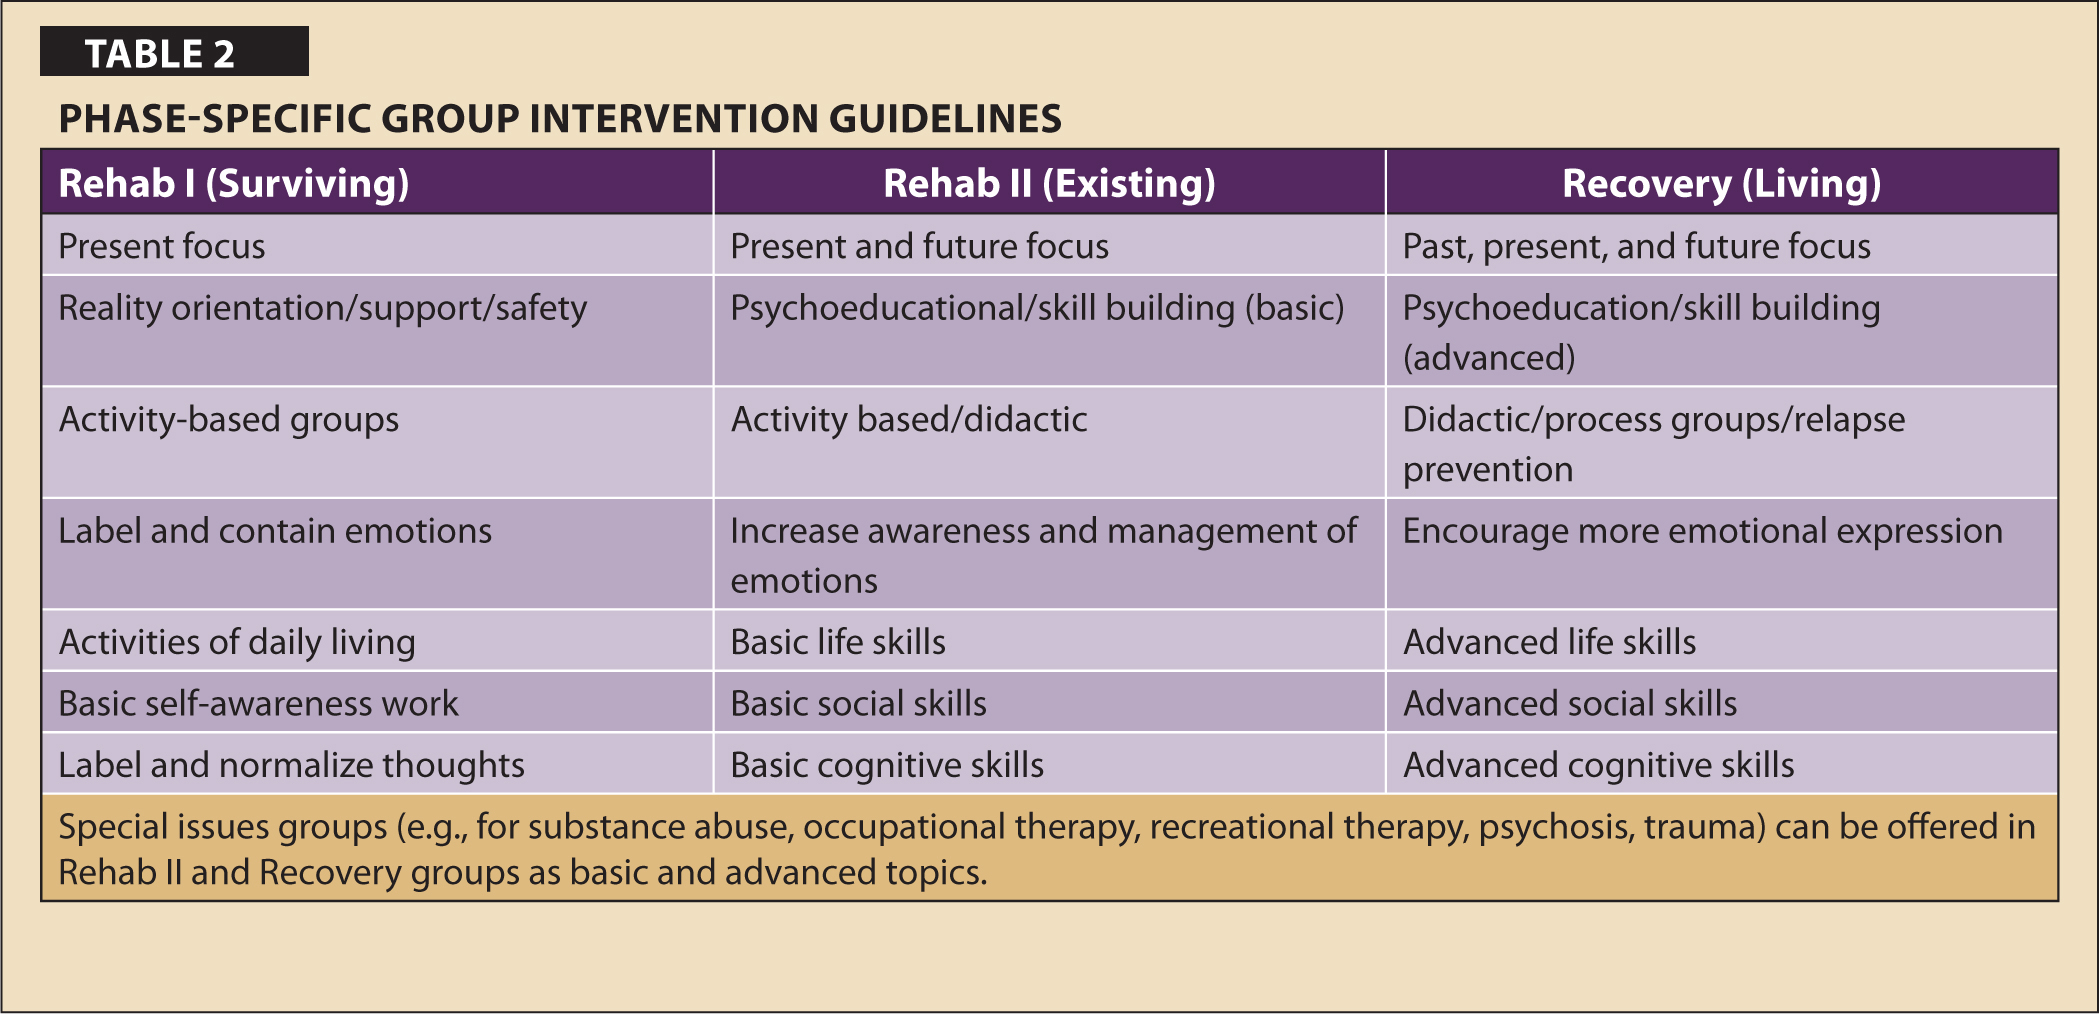 Phase-Specific Group Intervention Guidelines